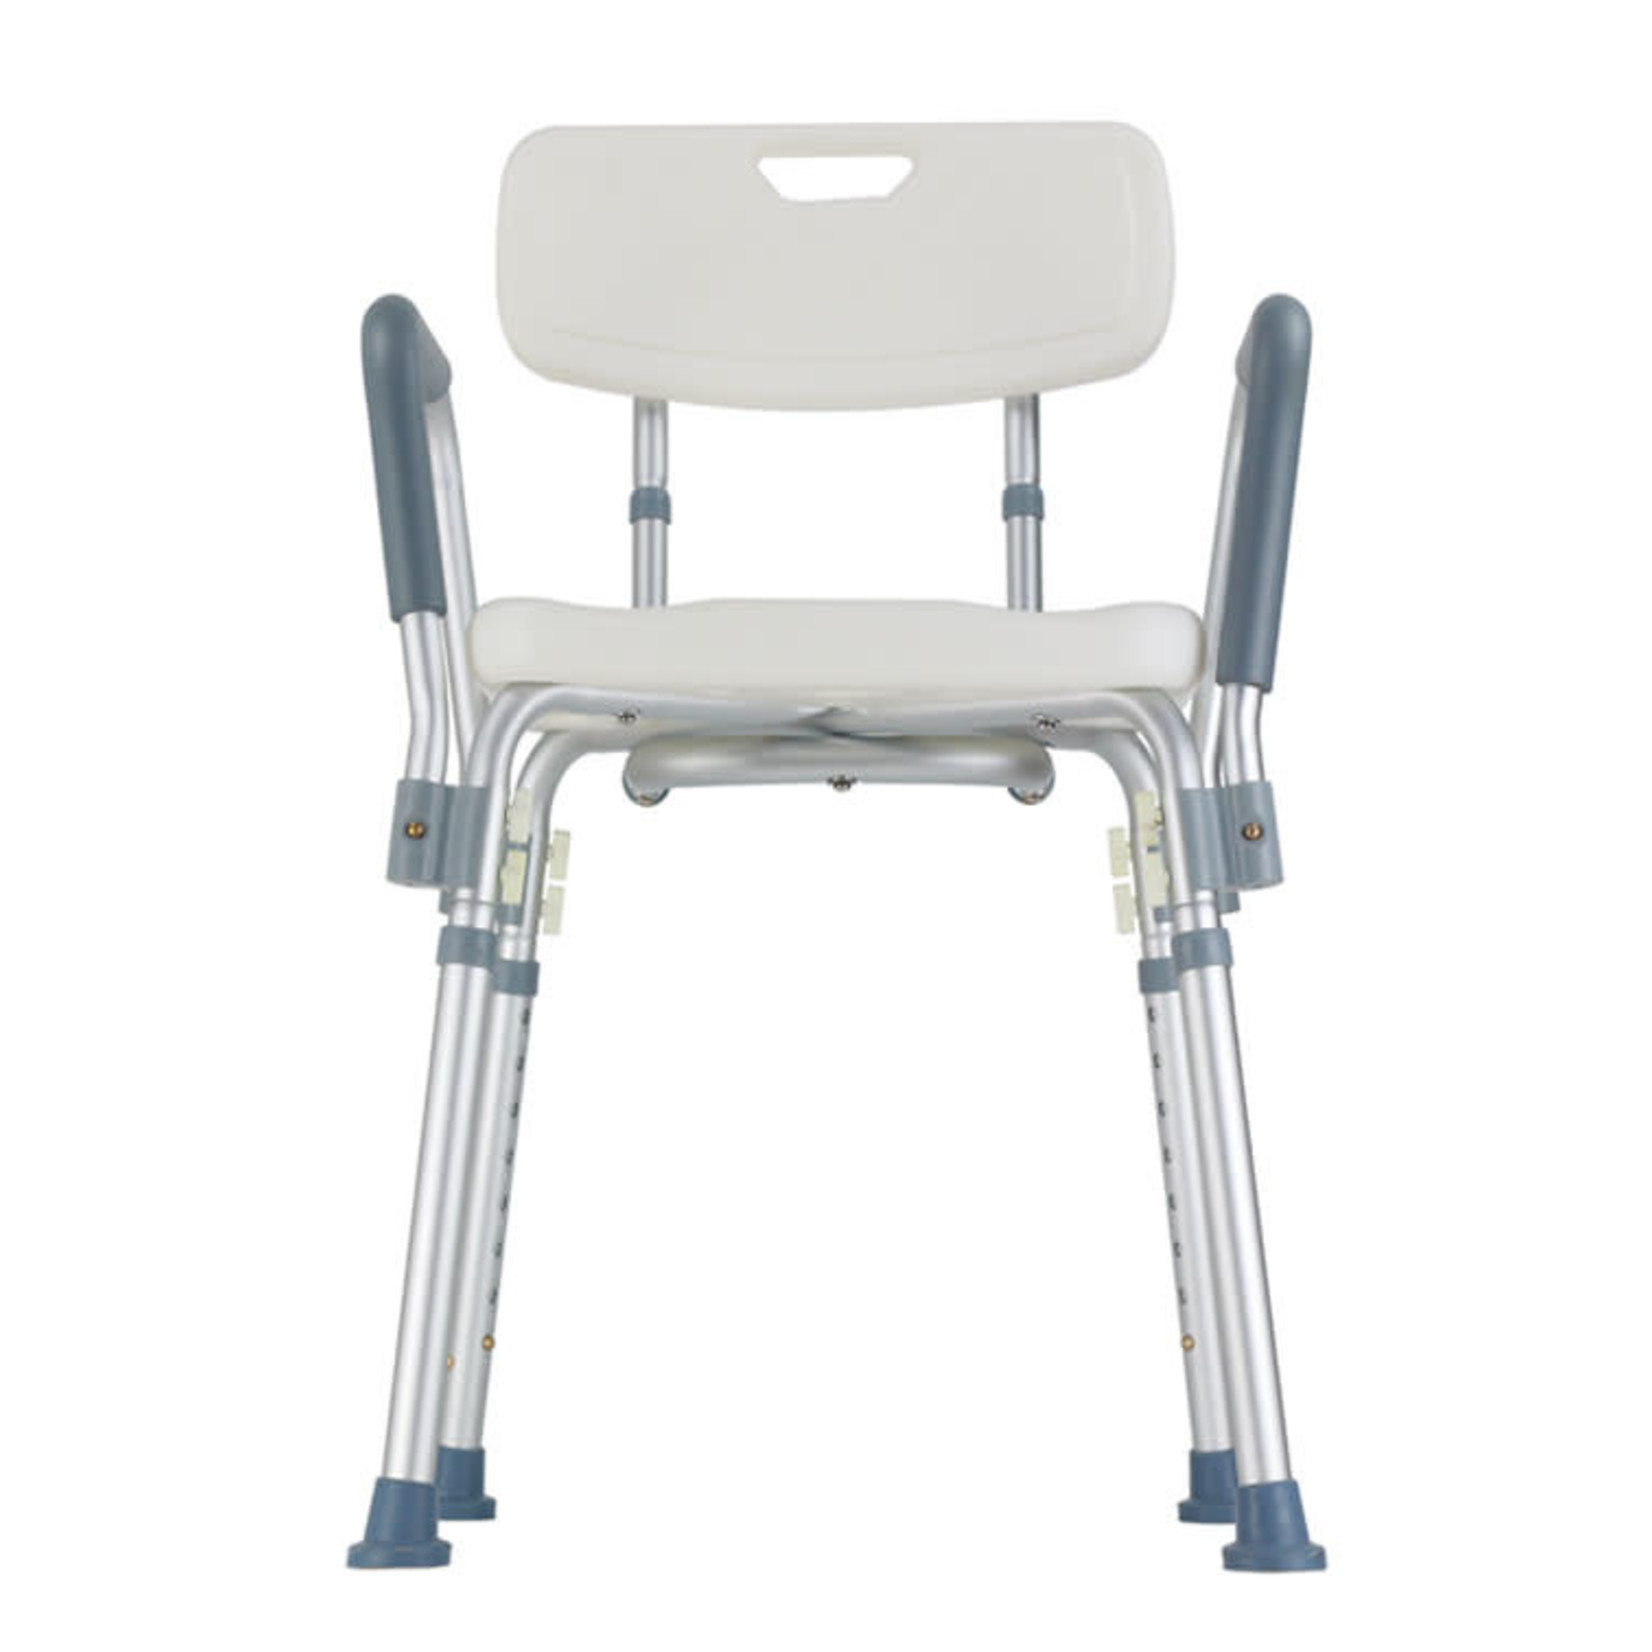 MOBB Shower chair with removable padded arms